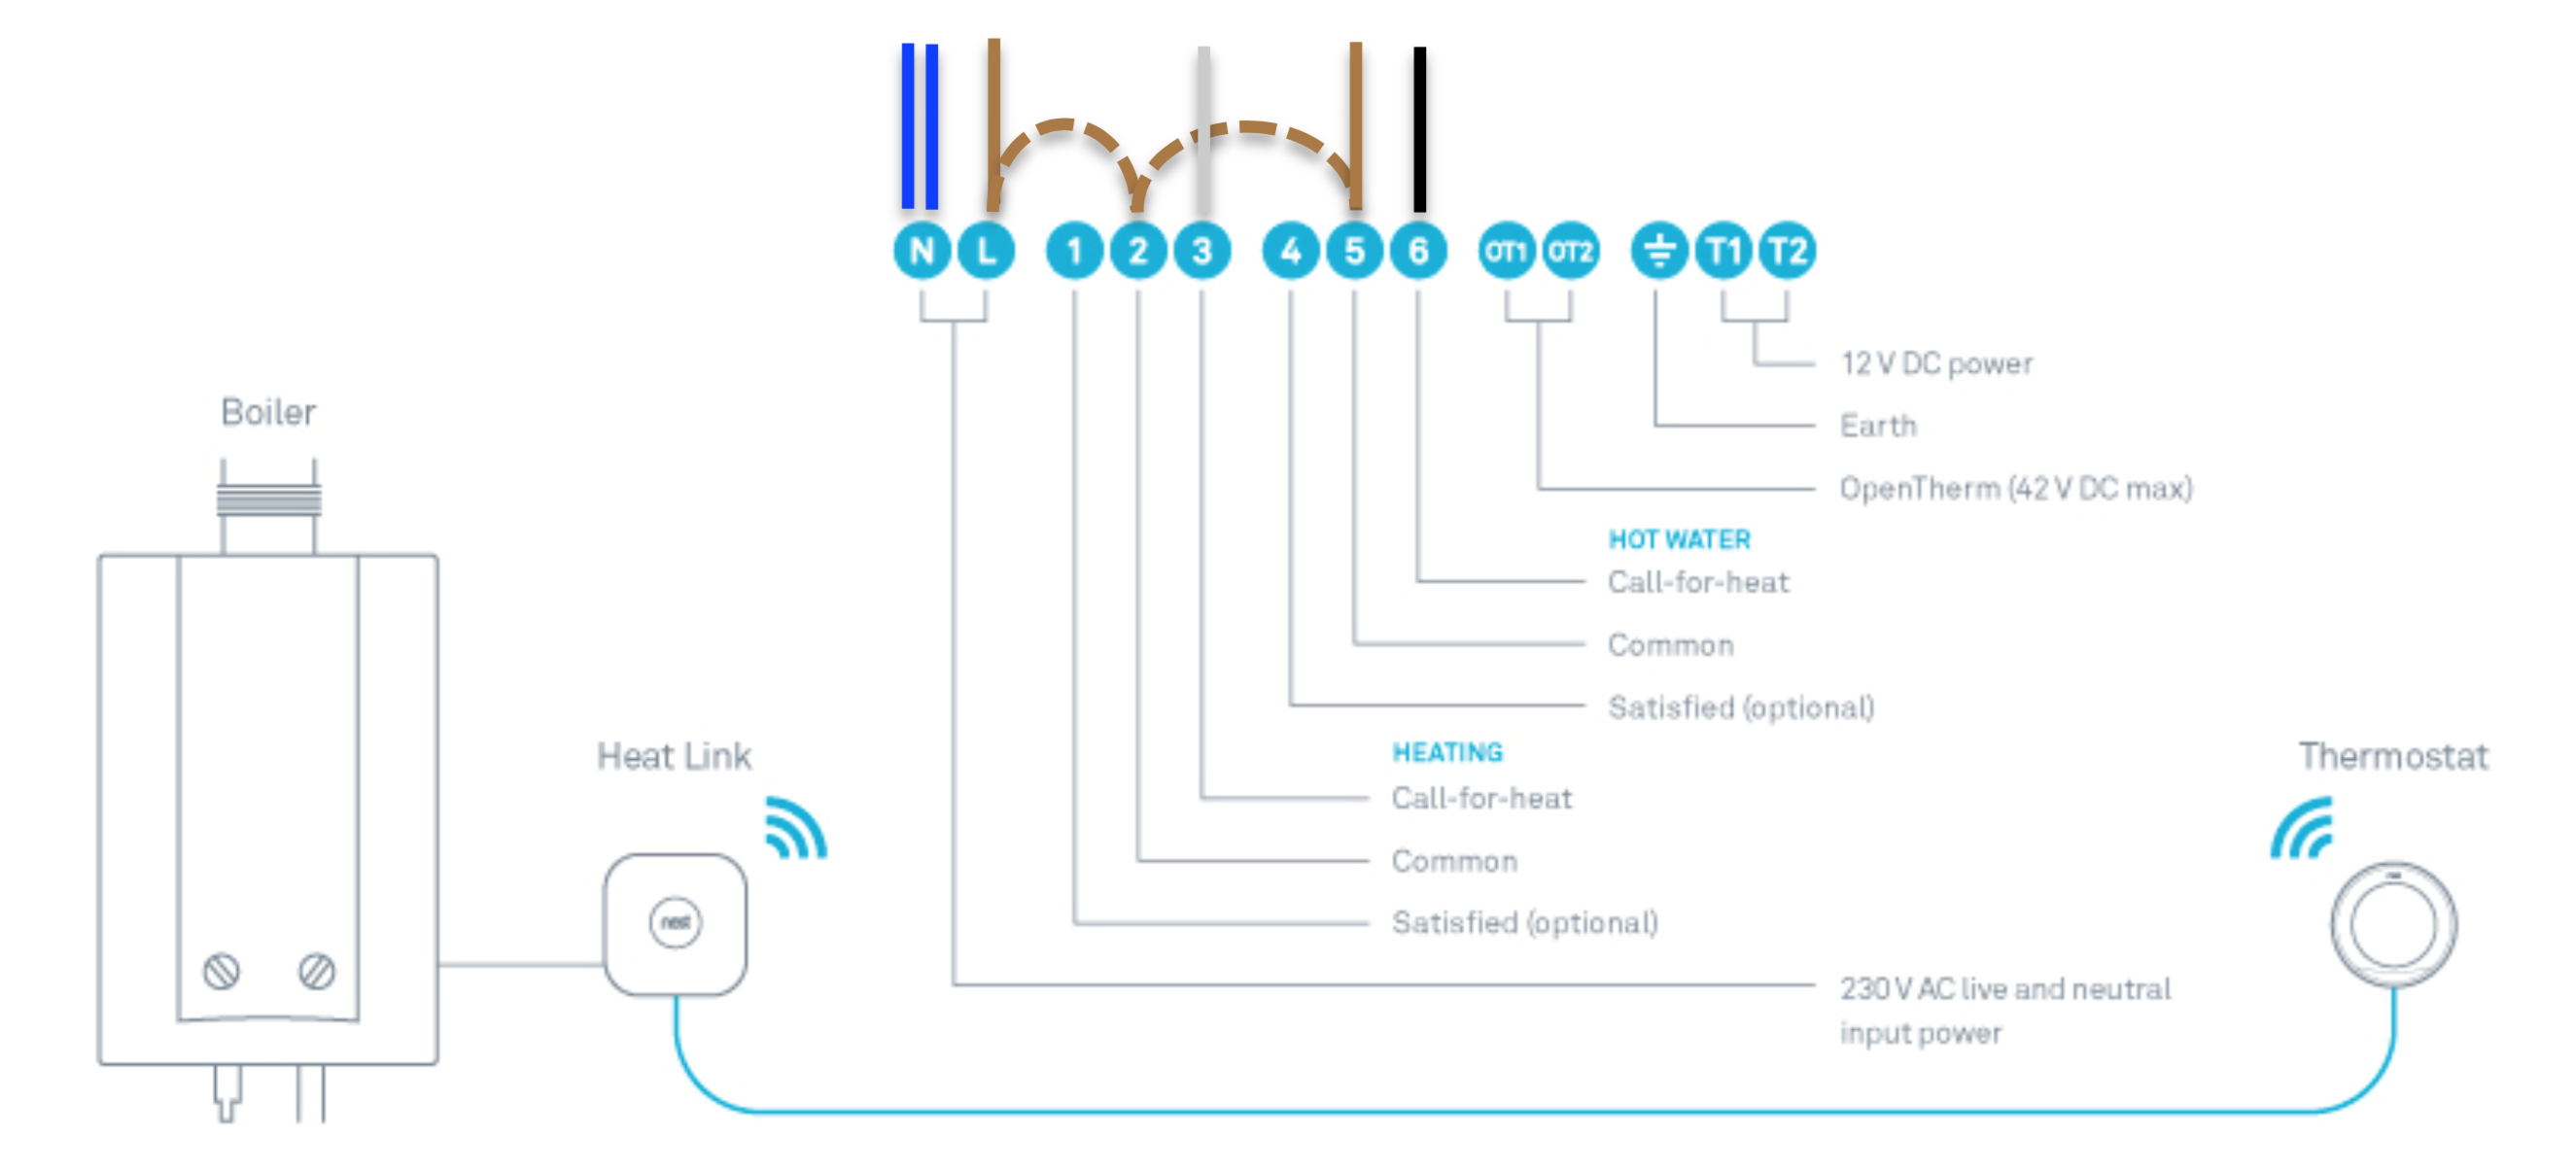 Nest Heat Link Wiring Diagram | Wiring Diagram - Nest Heat Link Wiring Diagram